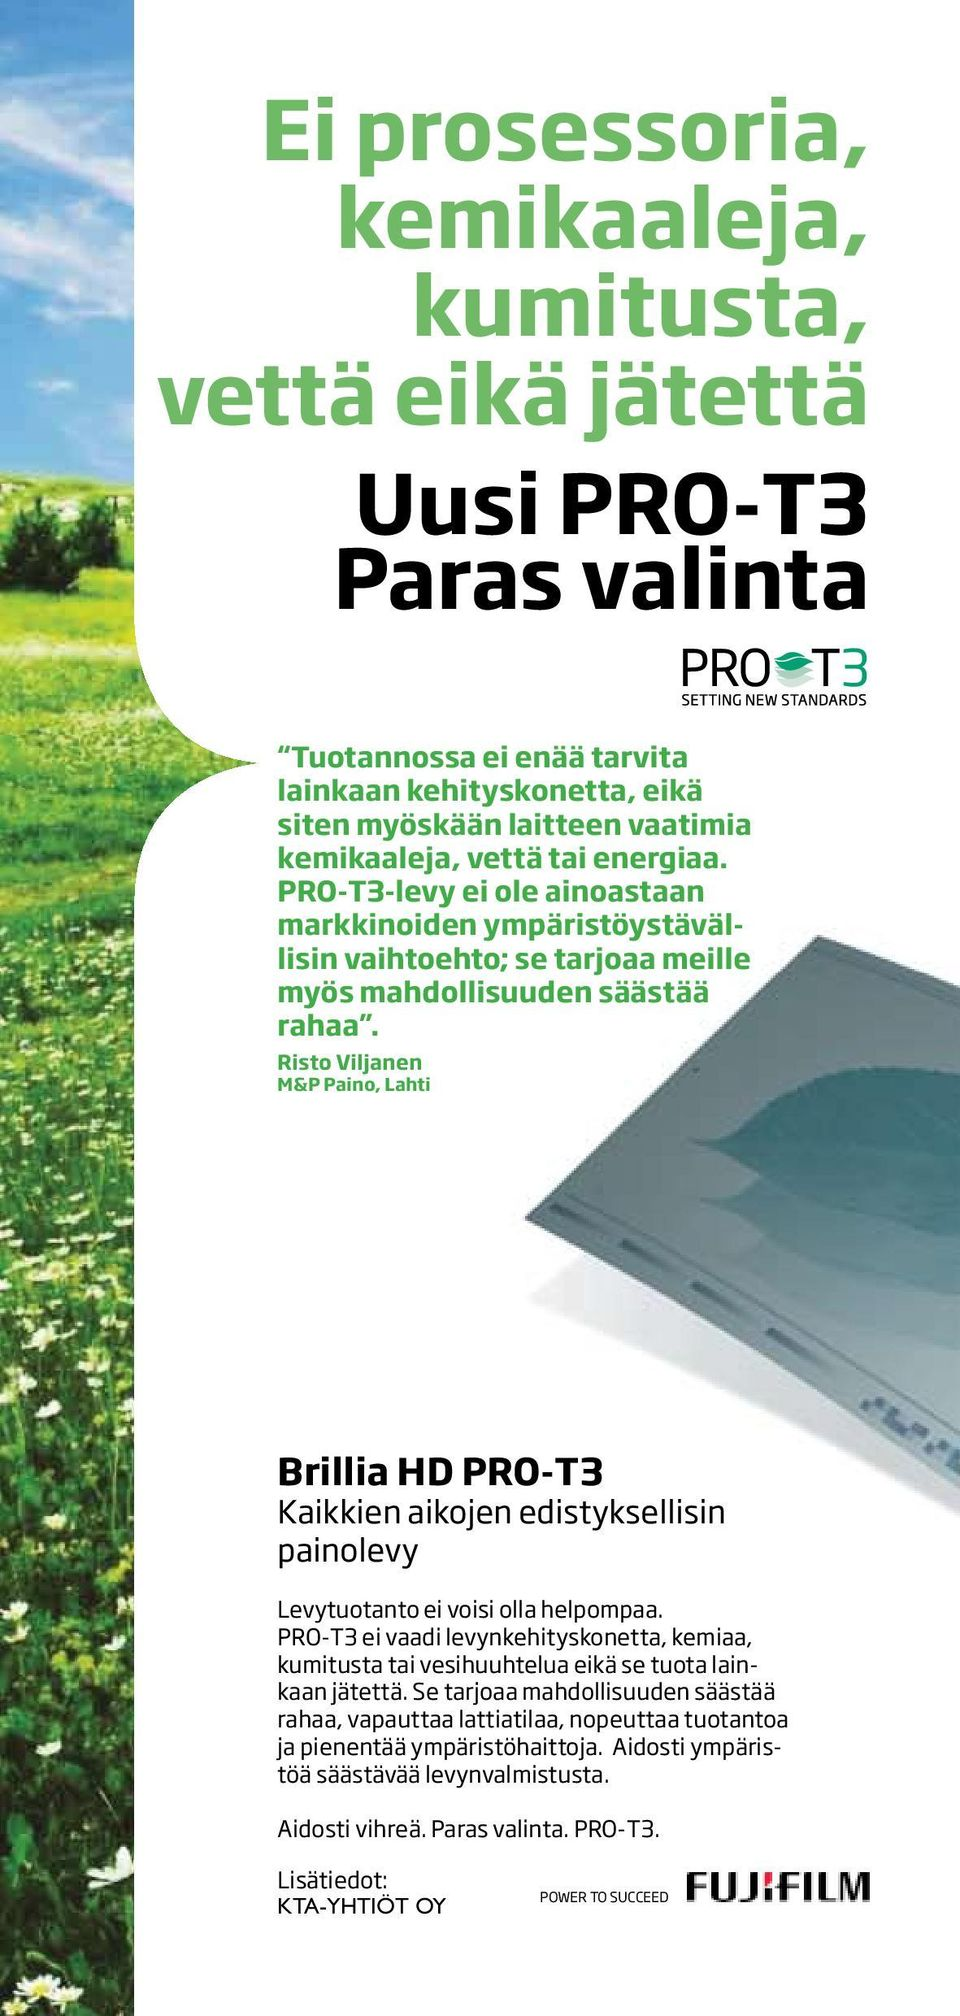 Brillia no processor, HD chemistry, PRO-T3 gum or water and it Kaikkien aikojen edistyksellisin painolevy reduce labour, speed up production and enhance your environmental footprint.